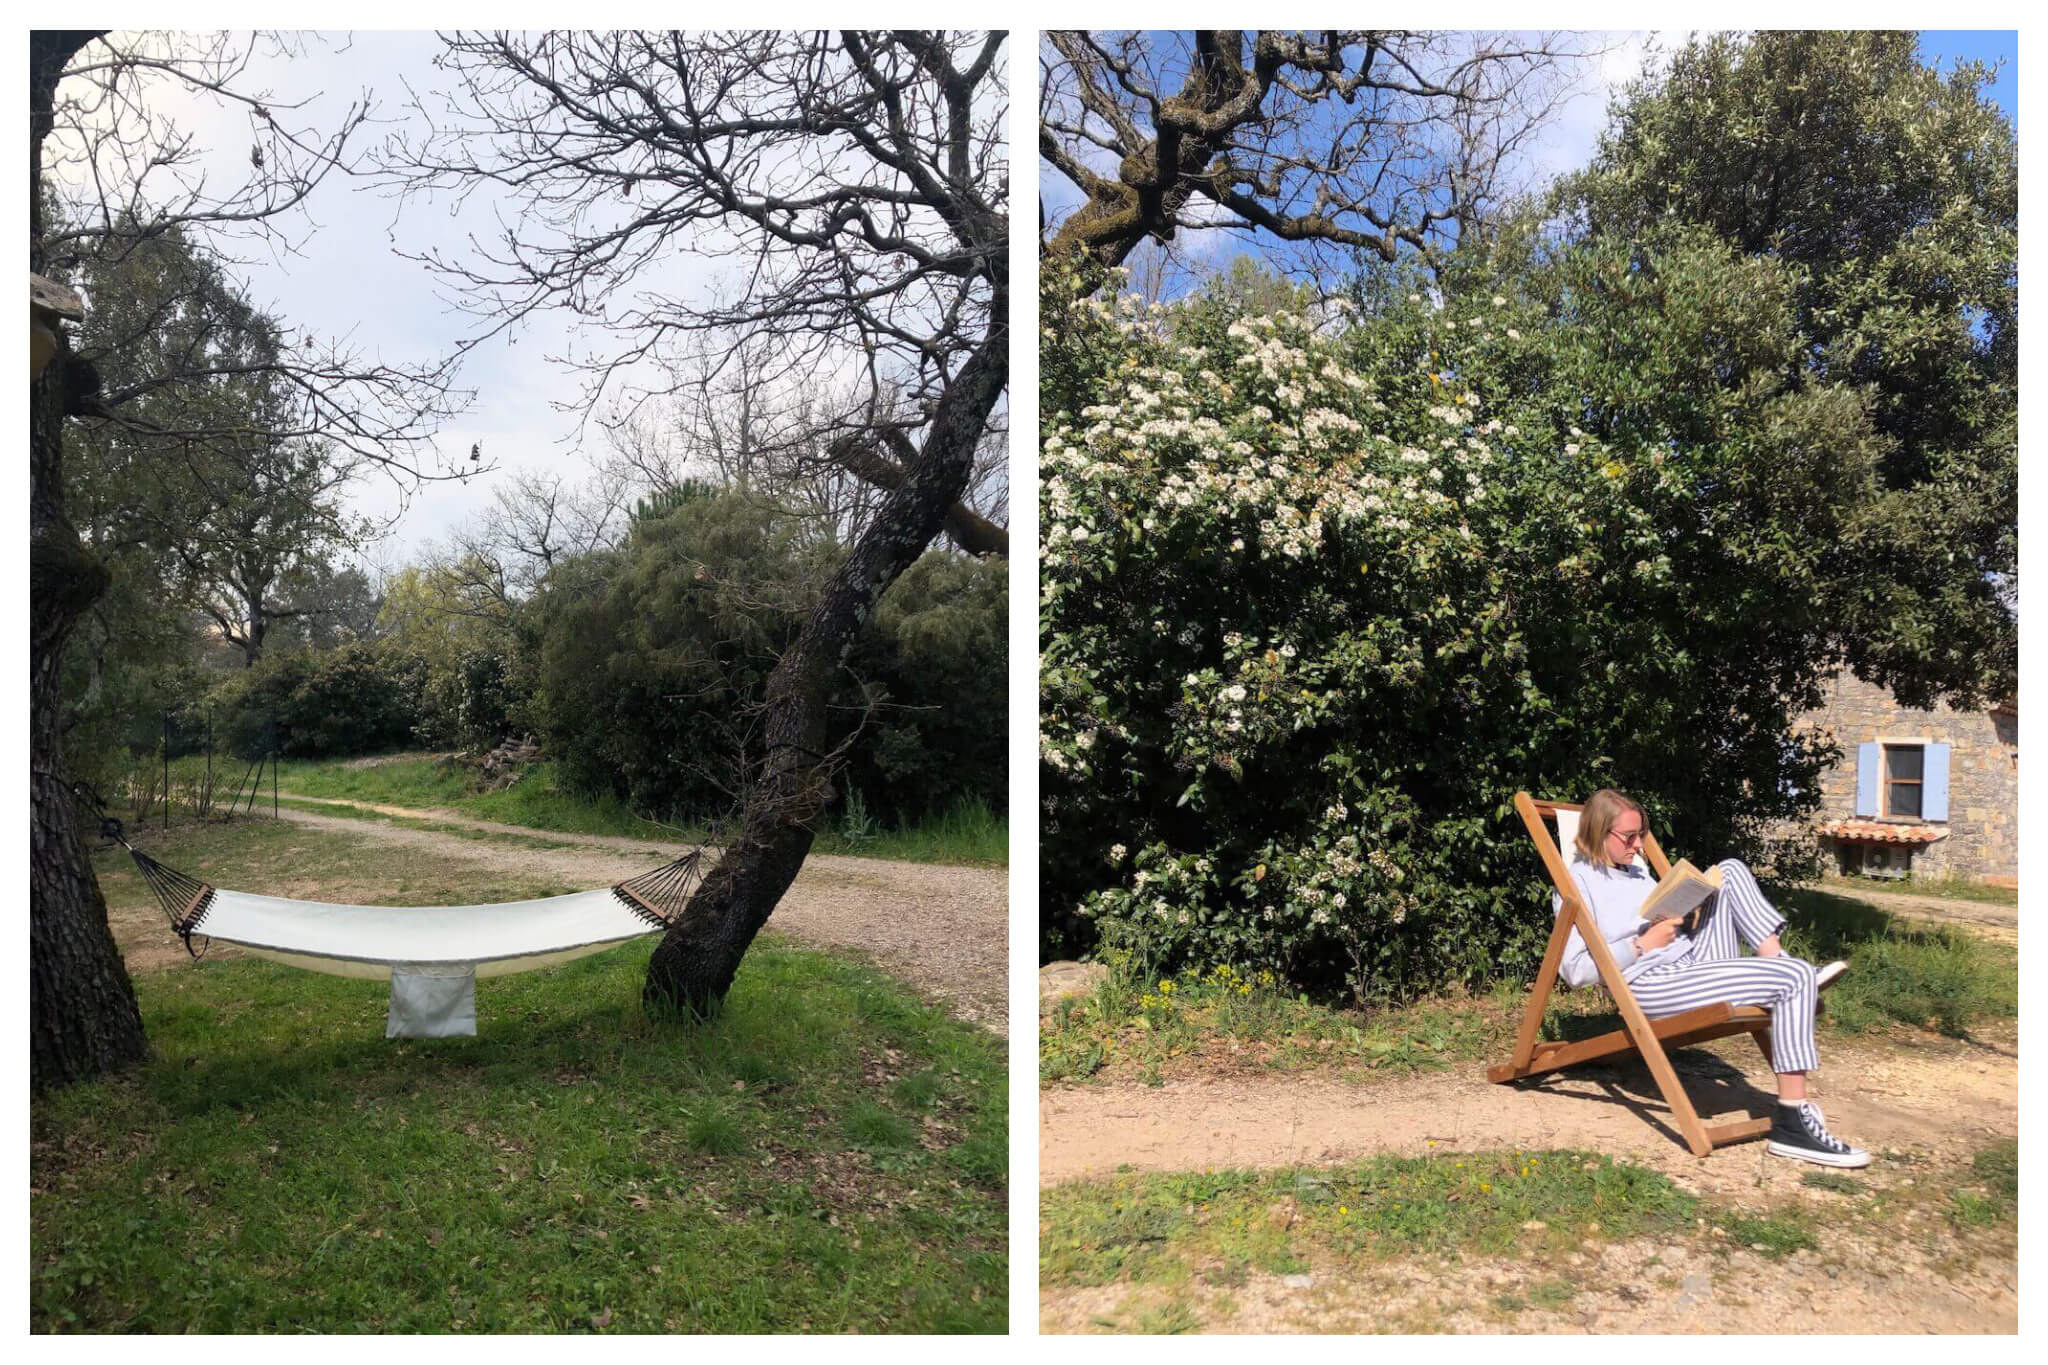 Left: A hammock hangs from two trees in the South of France. Right: Jamie sits and reads a book on a sunny day in the South of France.